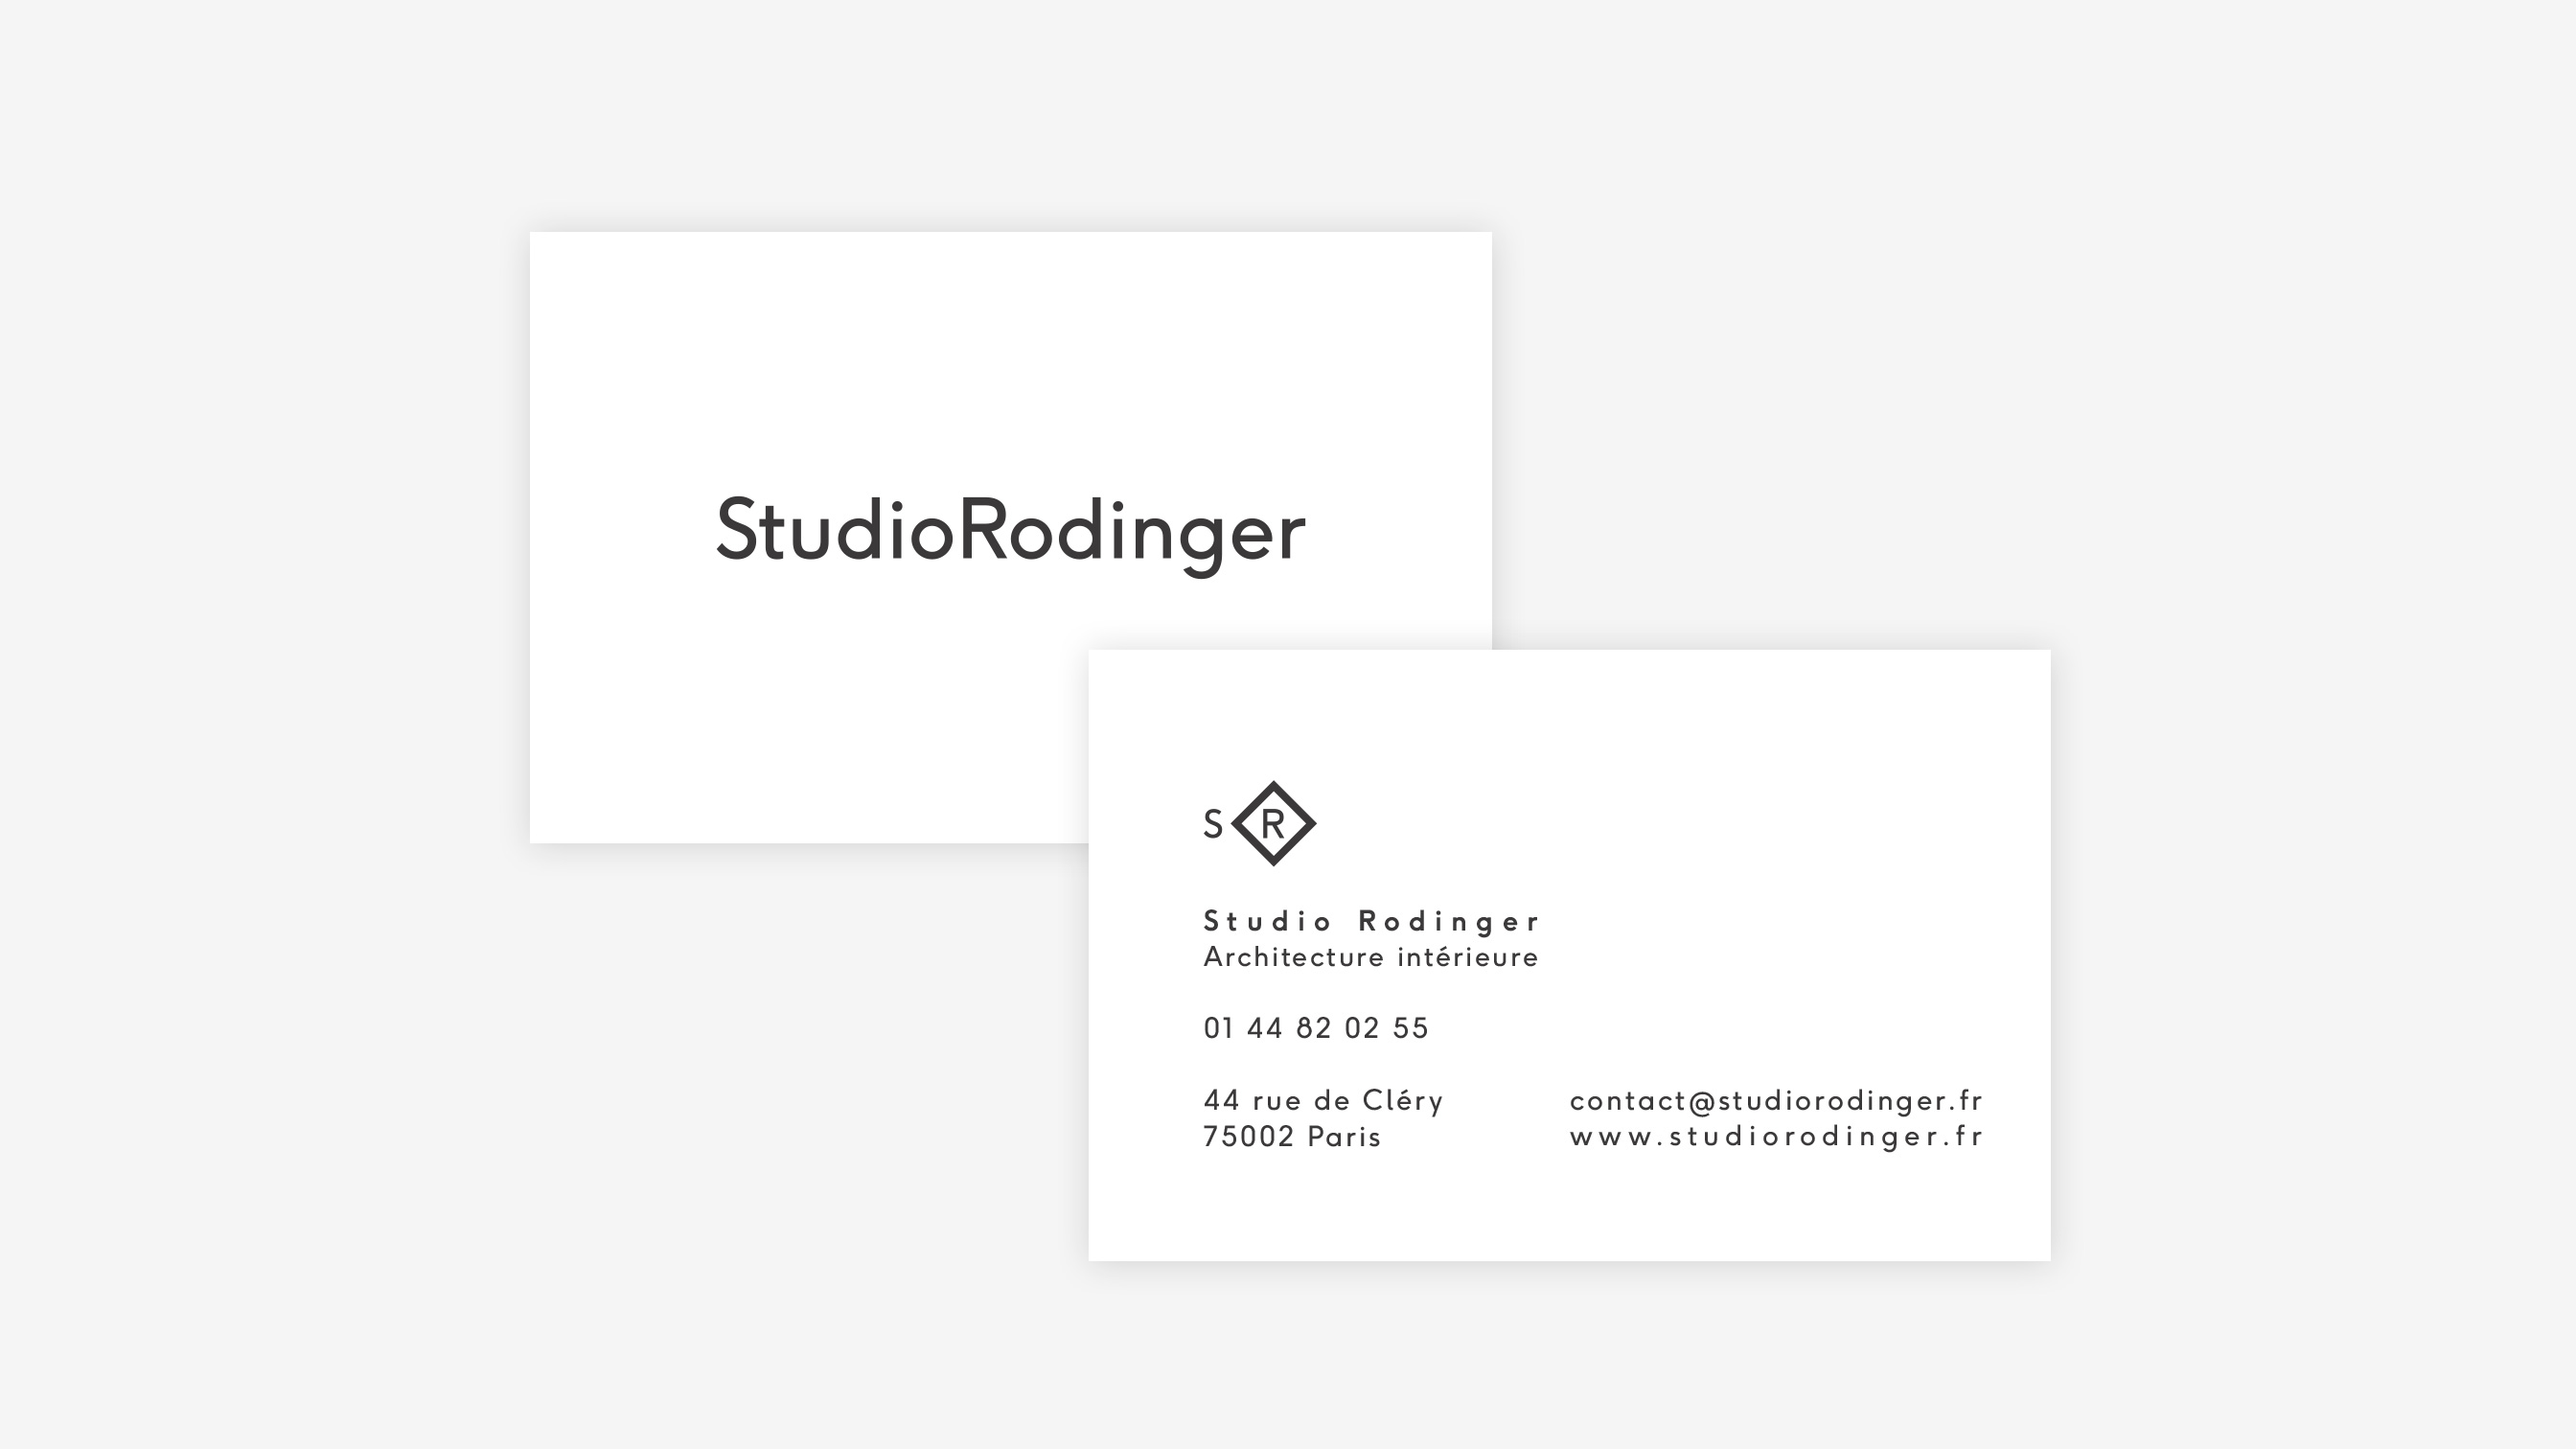 07-studio-rodinger-pikteo-webdesign-graphic-design-freelance-paris-bruxelles-londres